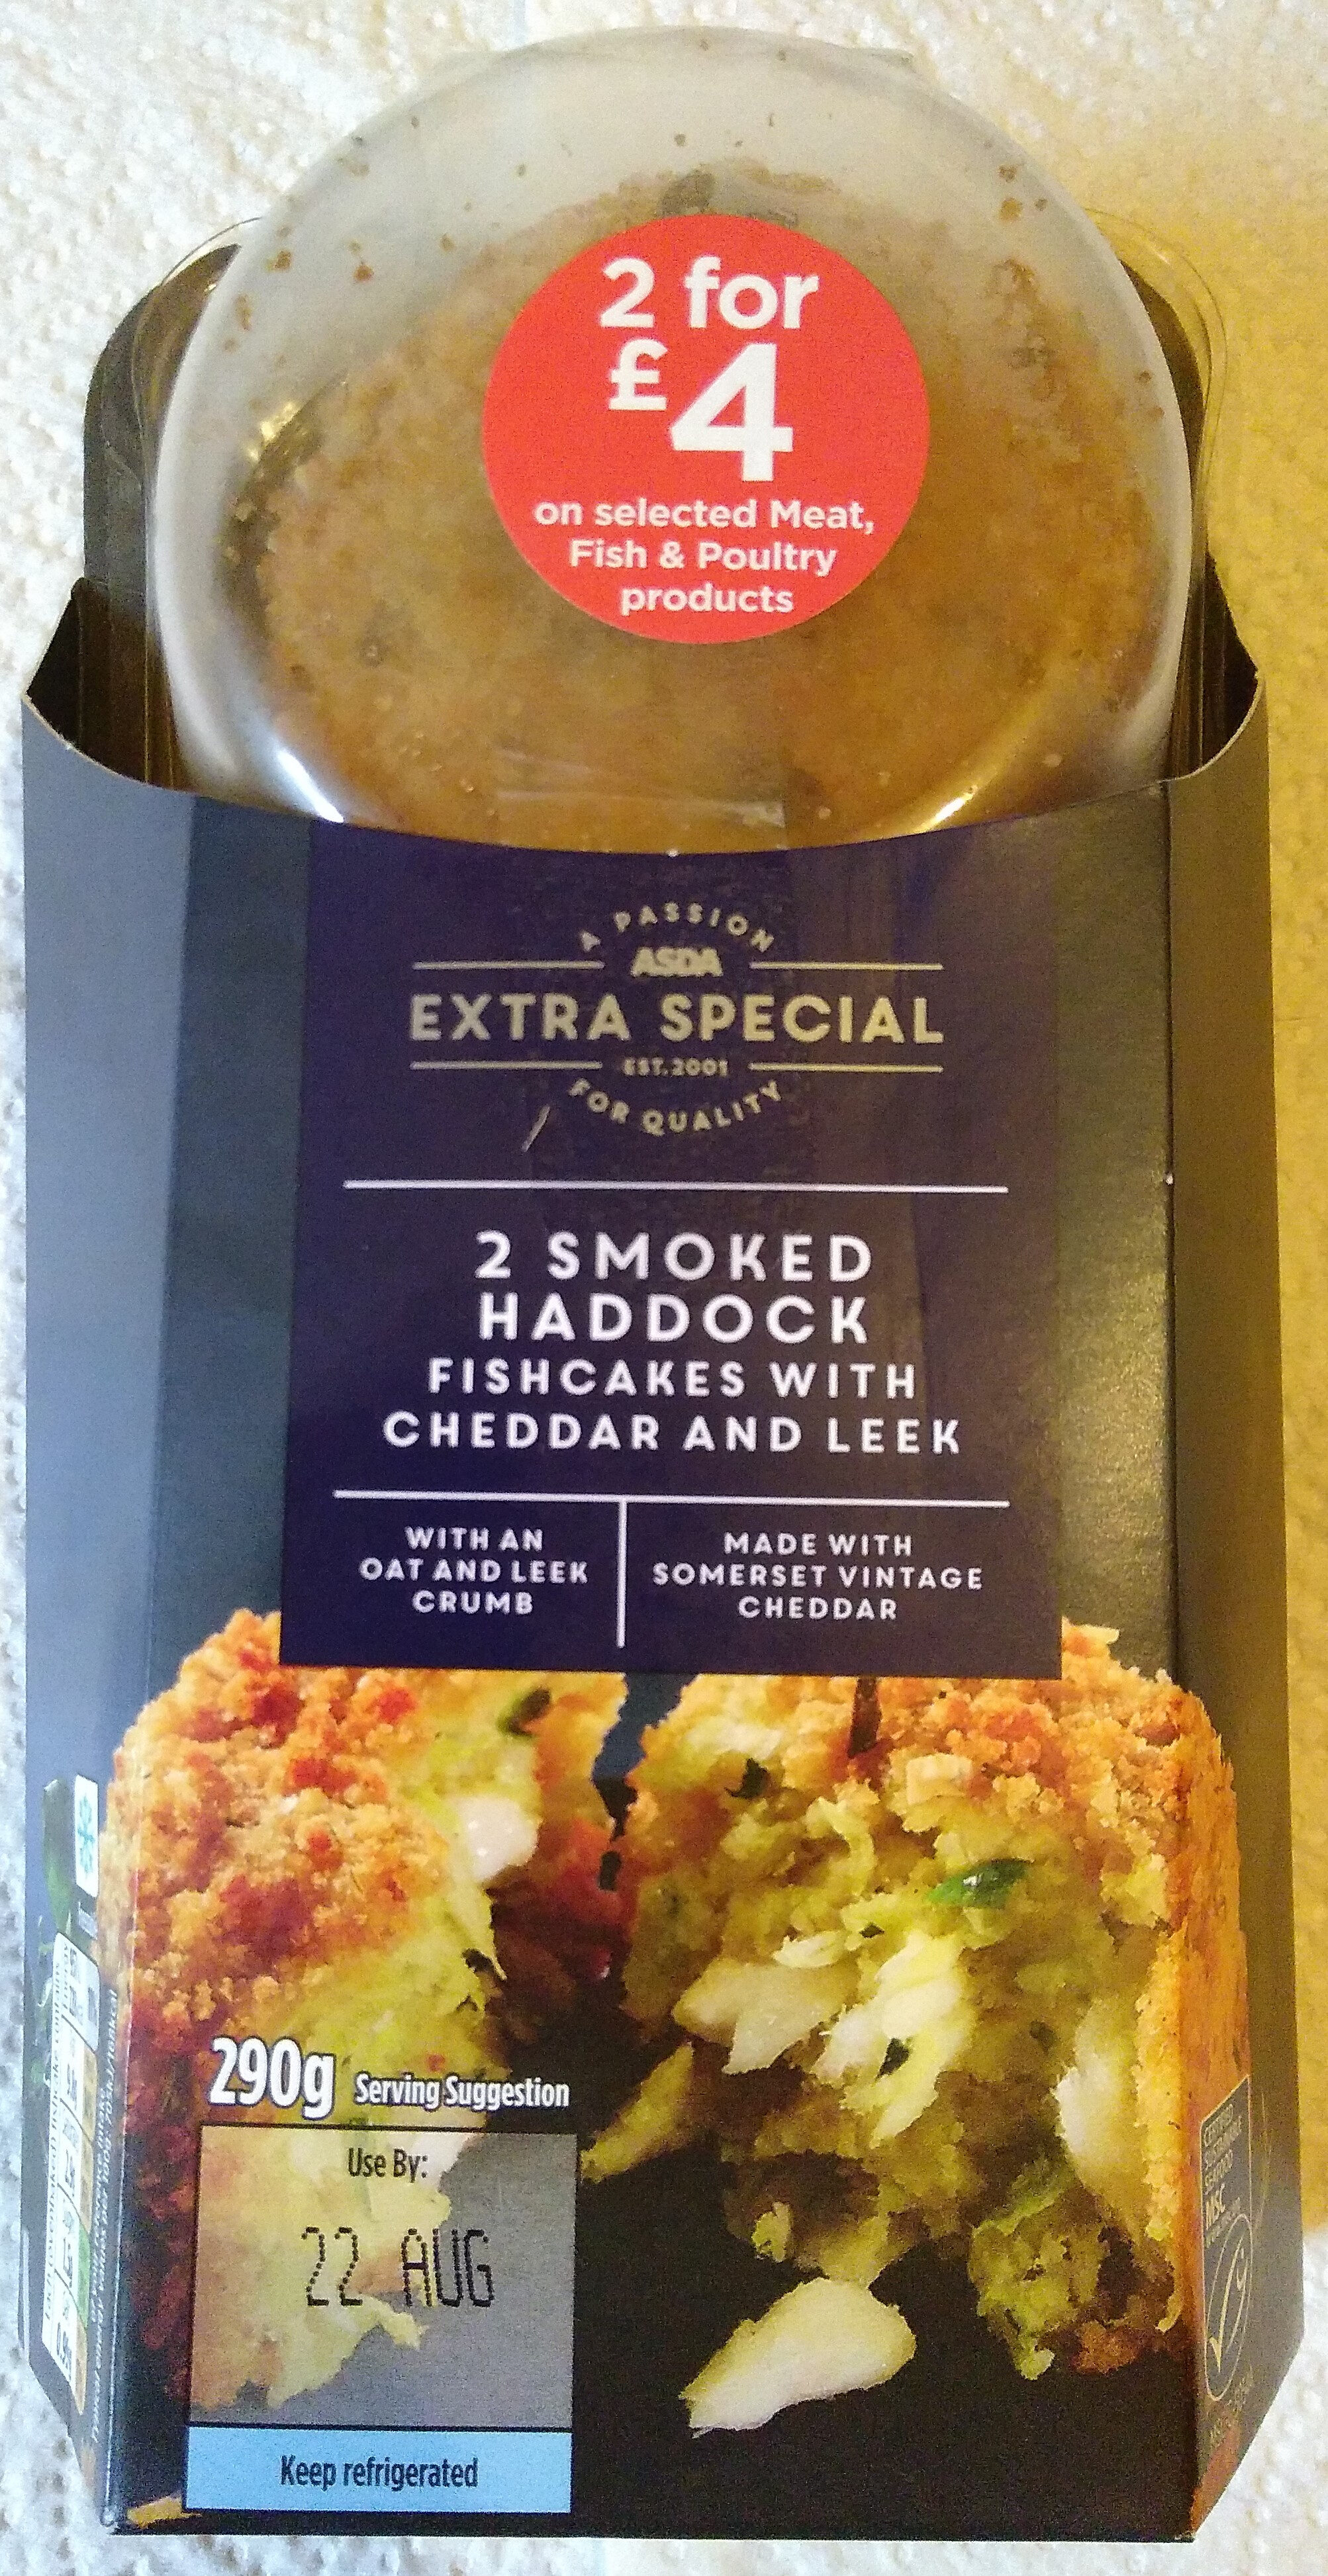 Extra Special 2 Smoked Haddock Fishcakes with cheddar and leek - Produit - en